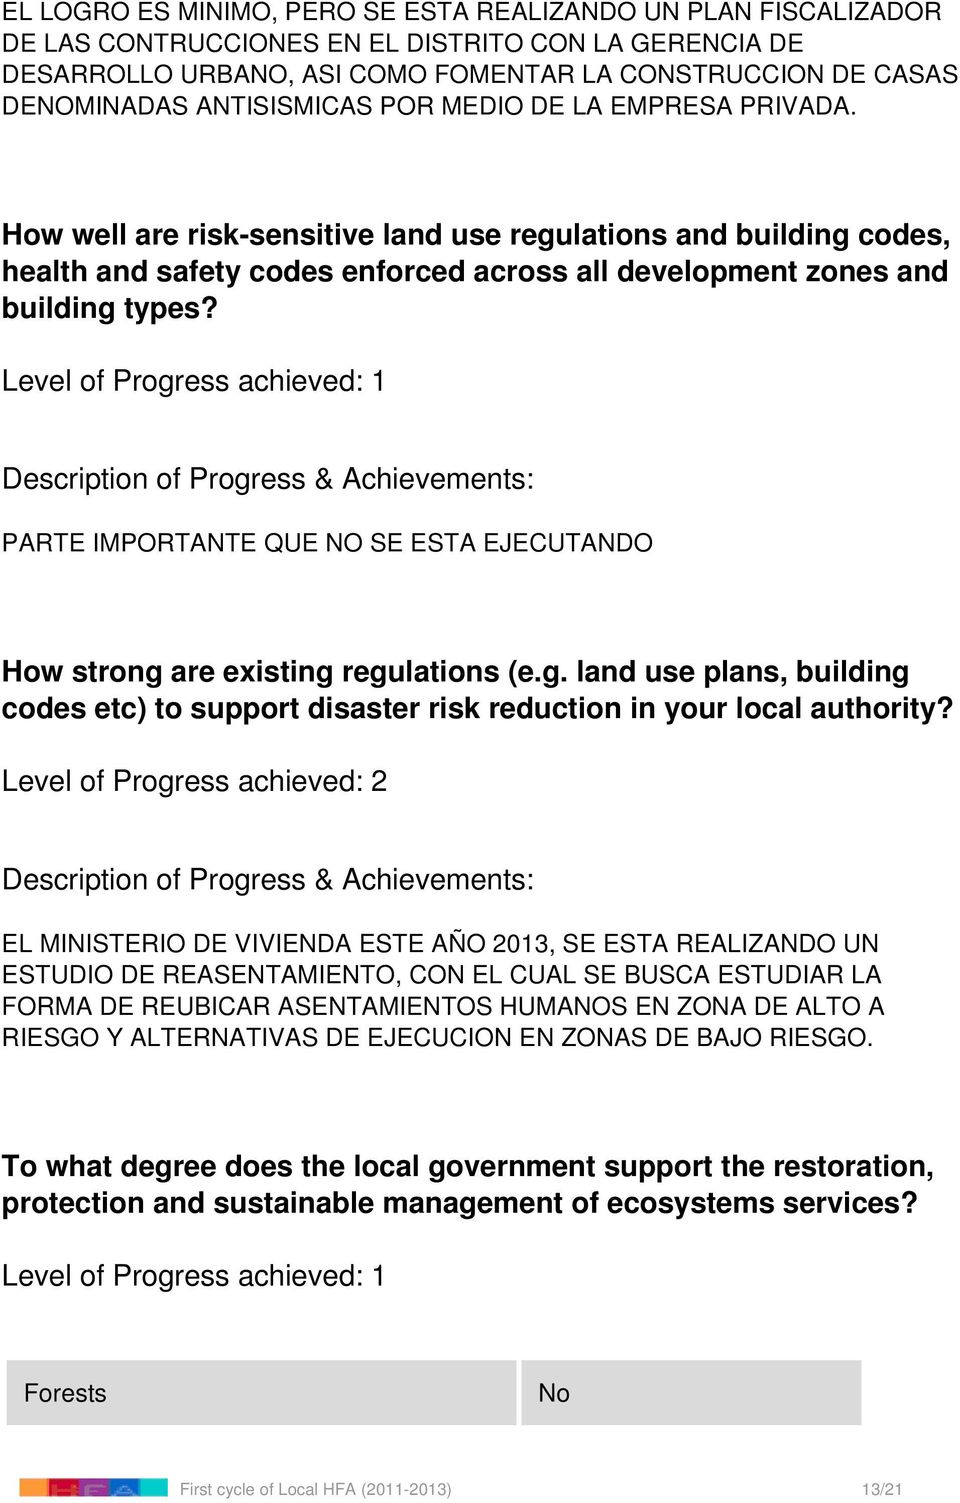 PARTE IMPORTANTE QUE NO SE ESTA EJECUTANDO How strong are existing regulations (e.g. land use plans, building codes etc) to support disaster risk reduction in your local authority?